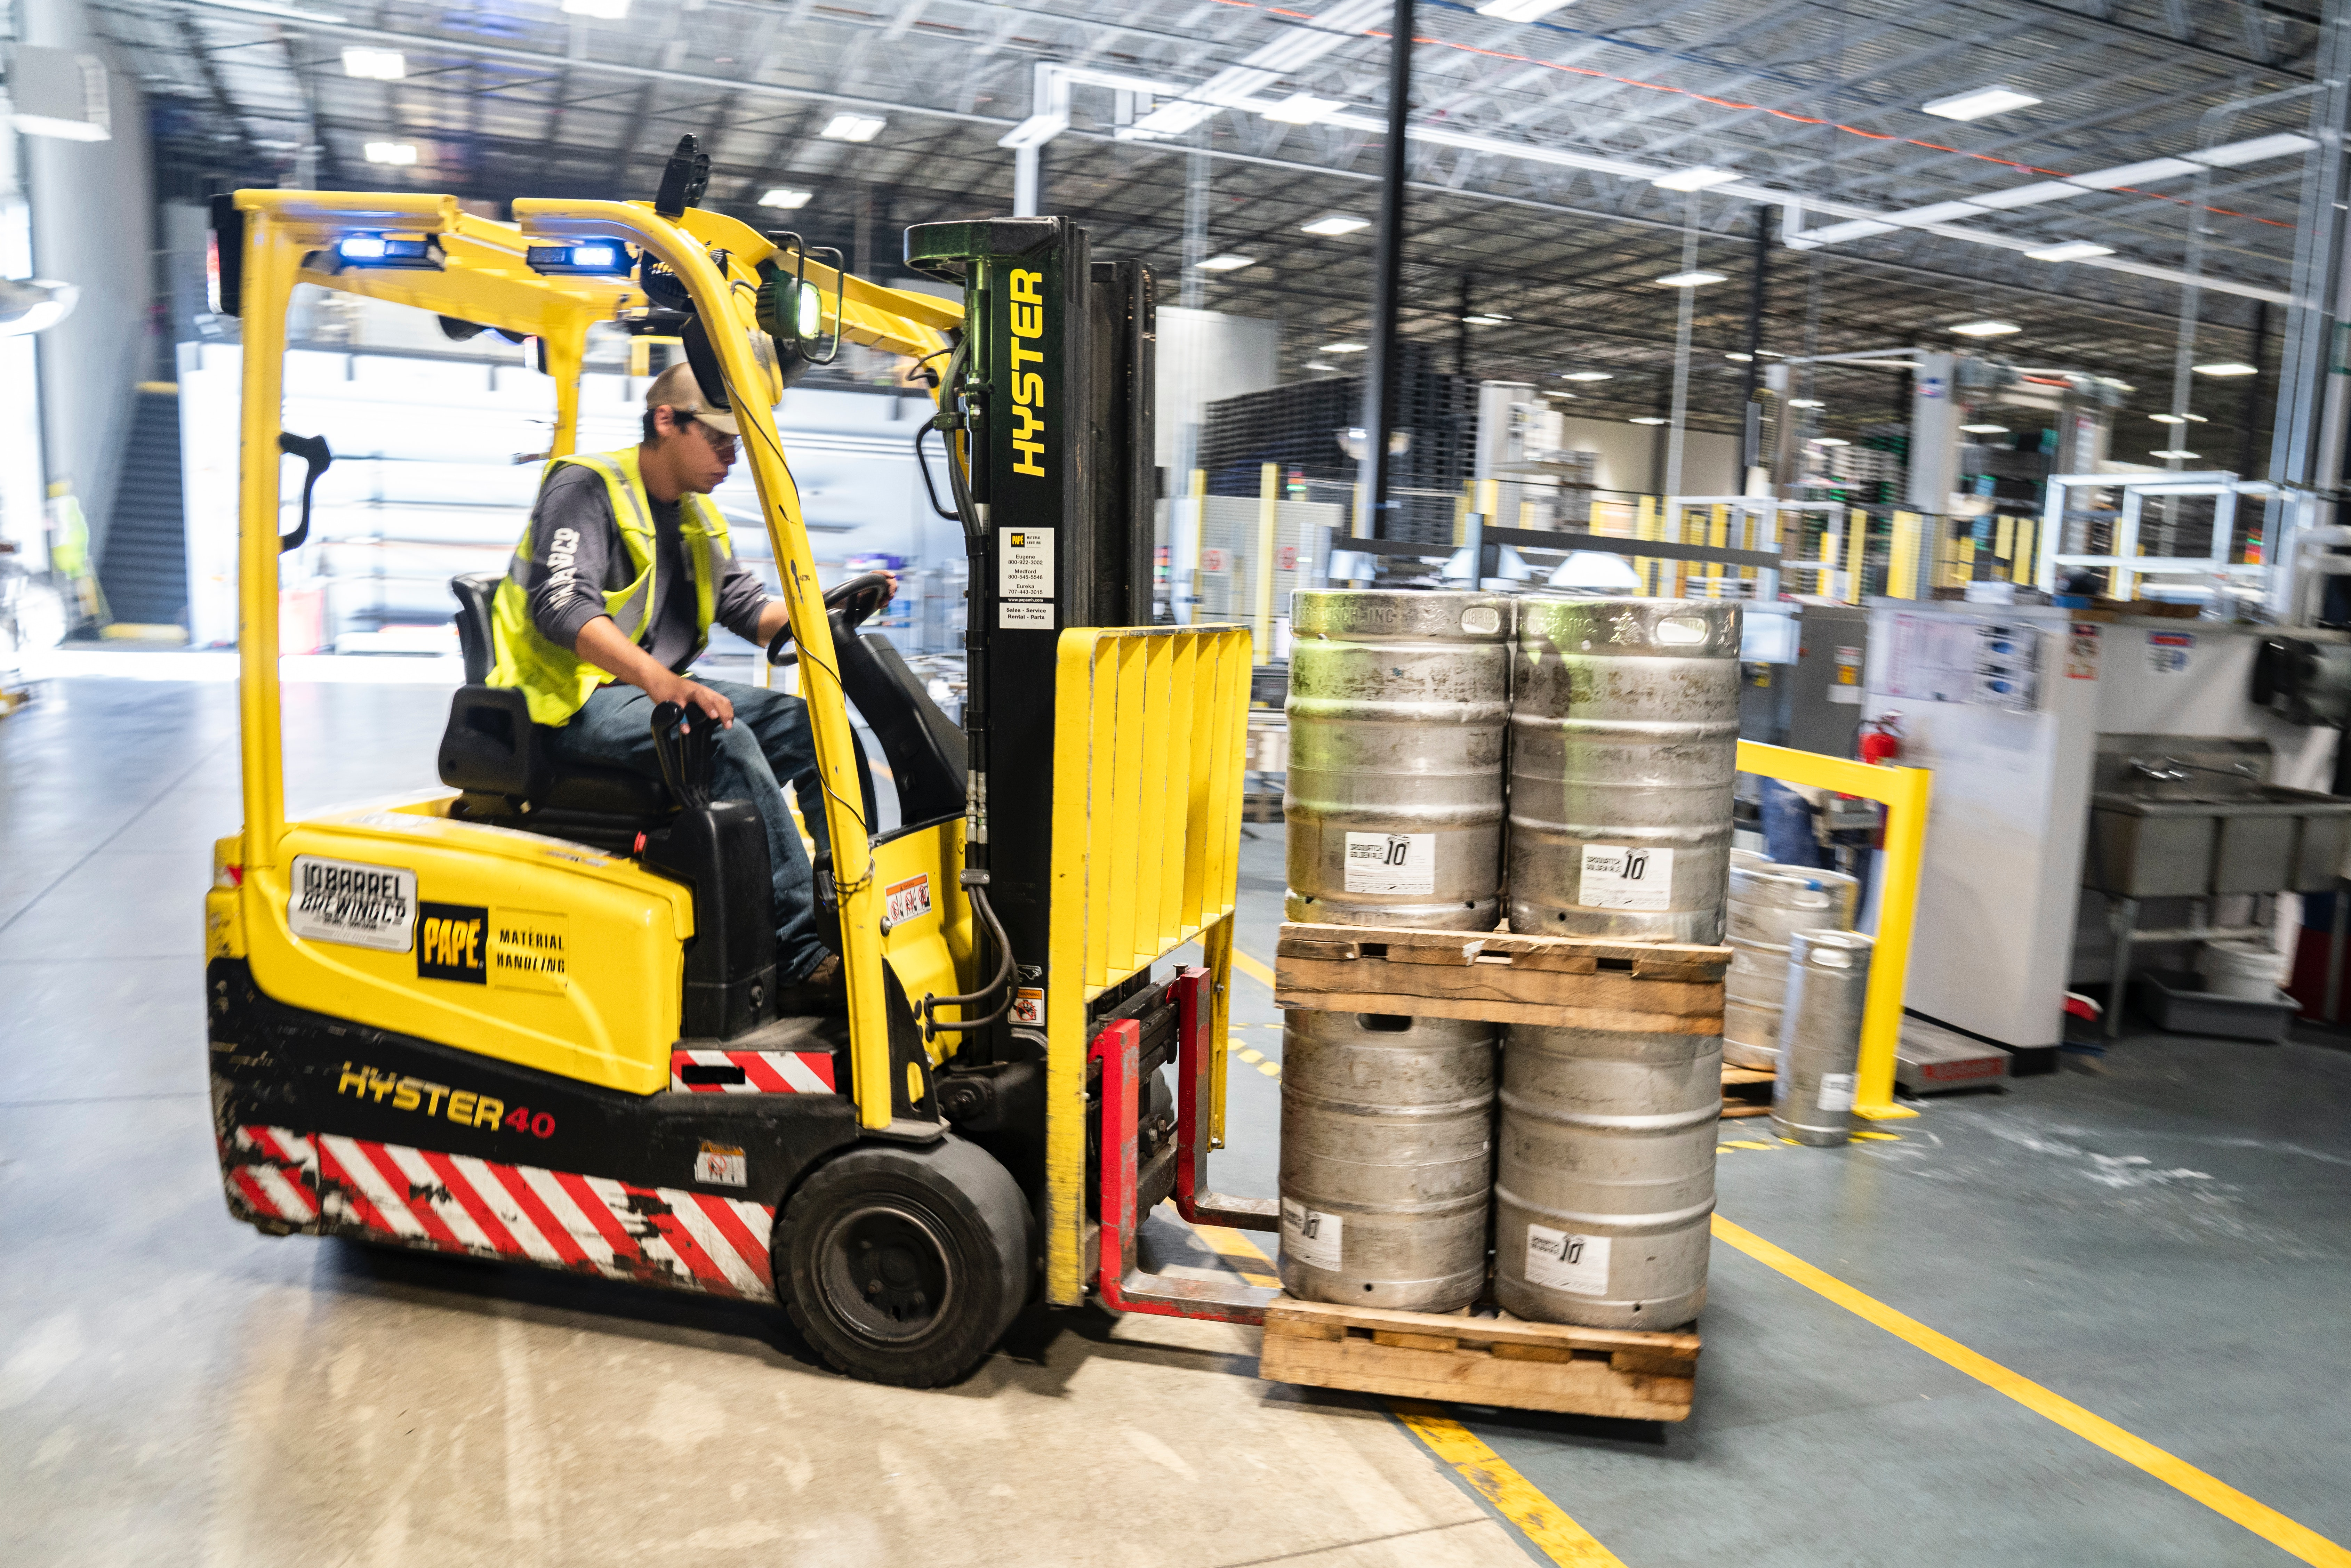 Forklift carrying metal barrels in manufacturing facility